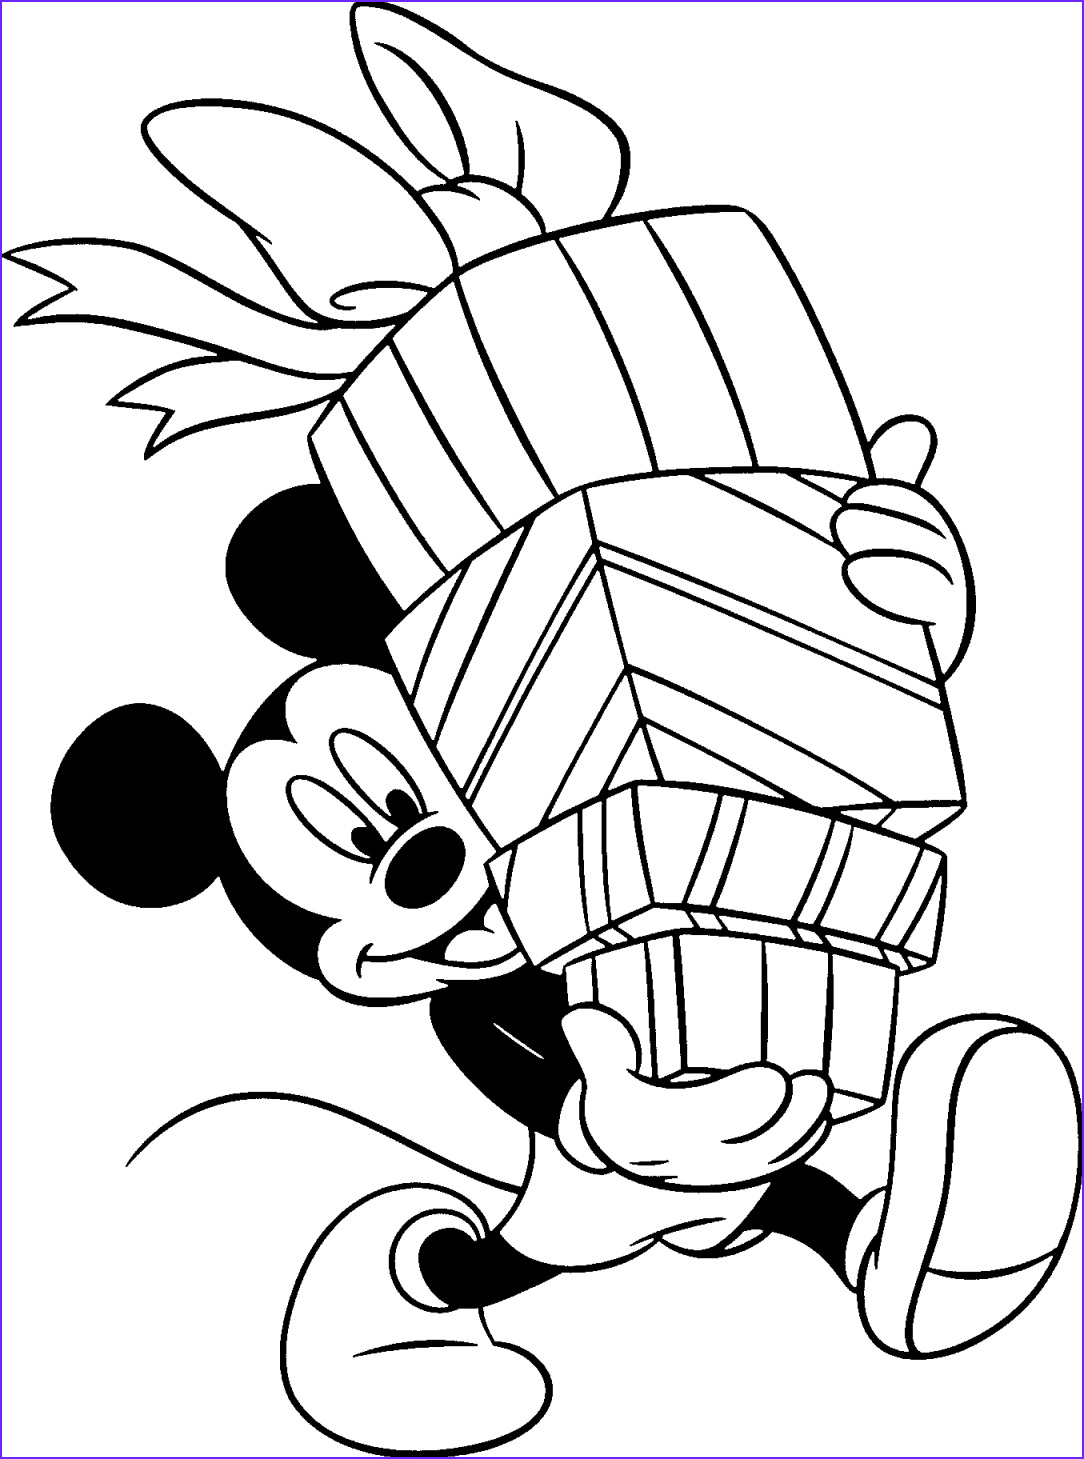 Disney World Coloring Pages Luxury Photos May 2010 Disney Coloring Pages